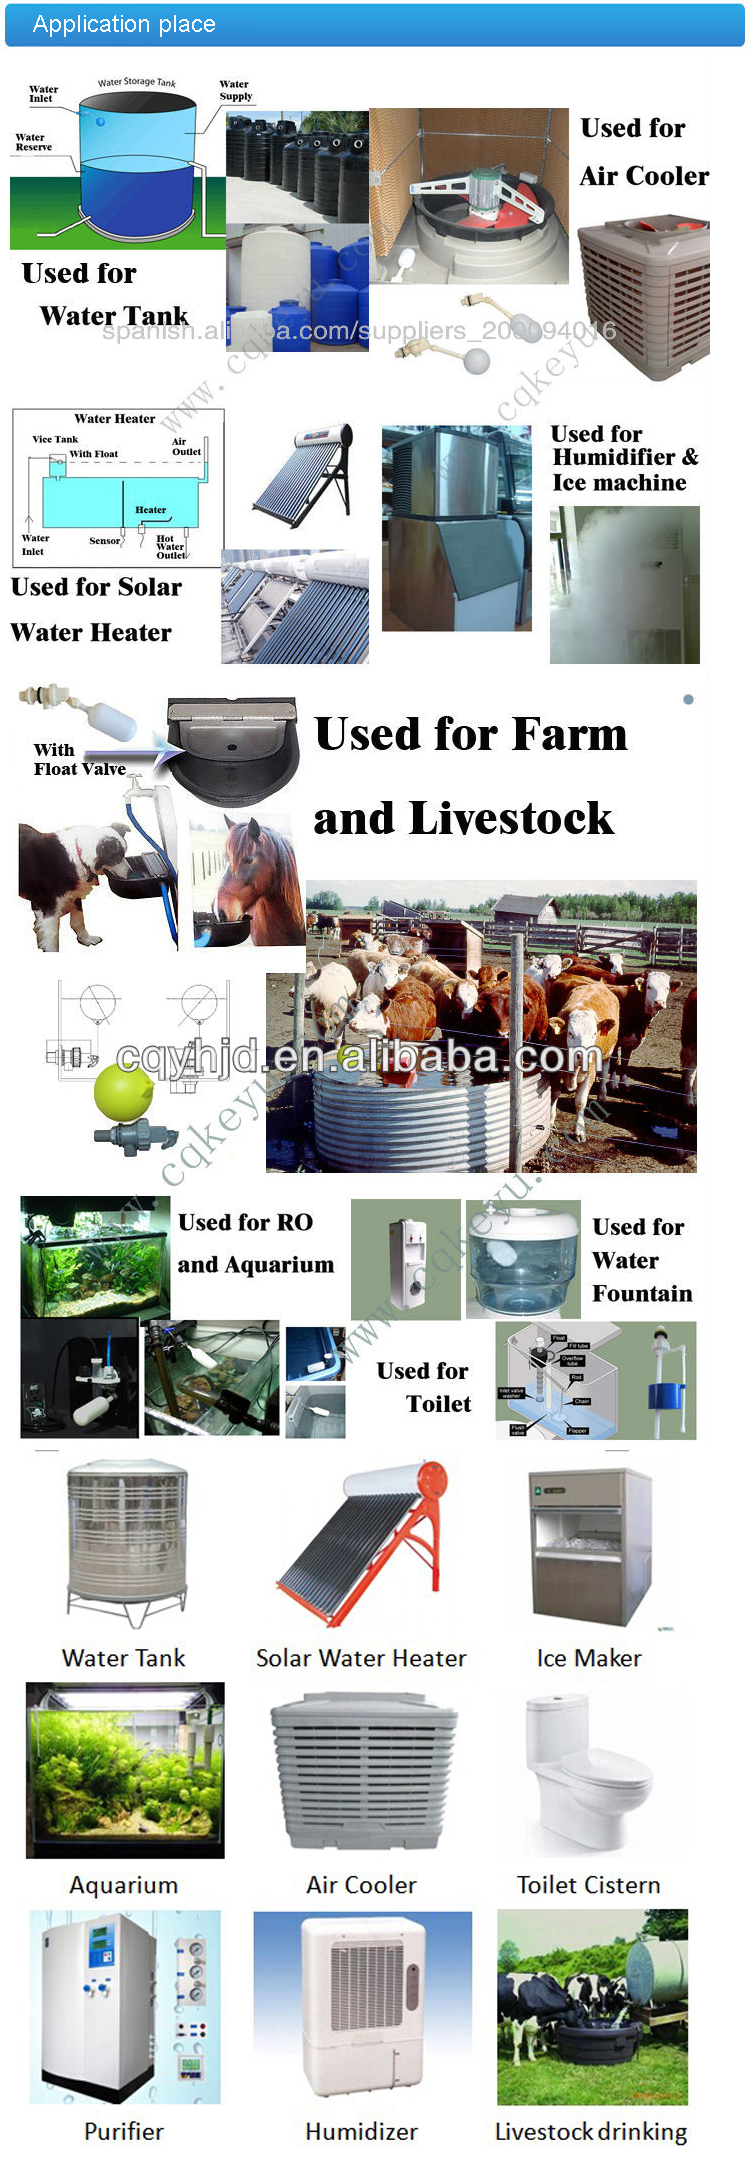 New Float Valve DN15EQ-X, Animal Drinker Cattle Cow Pig Drink Water Shutoff Fully Automatic